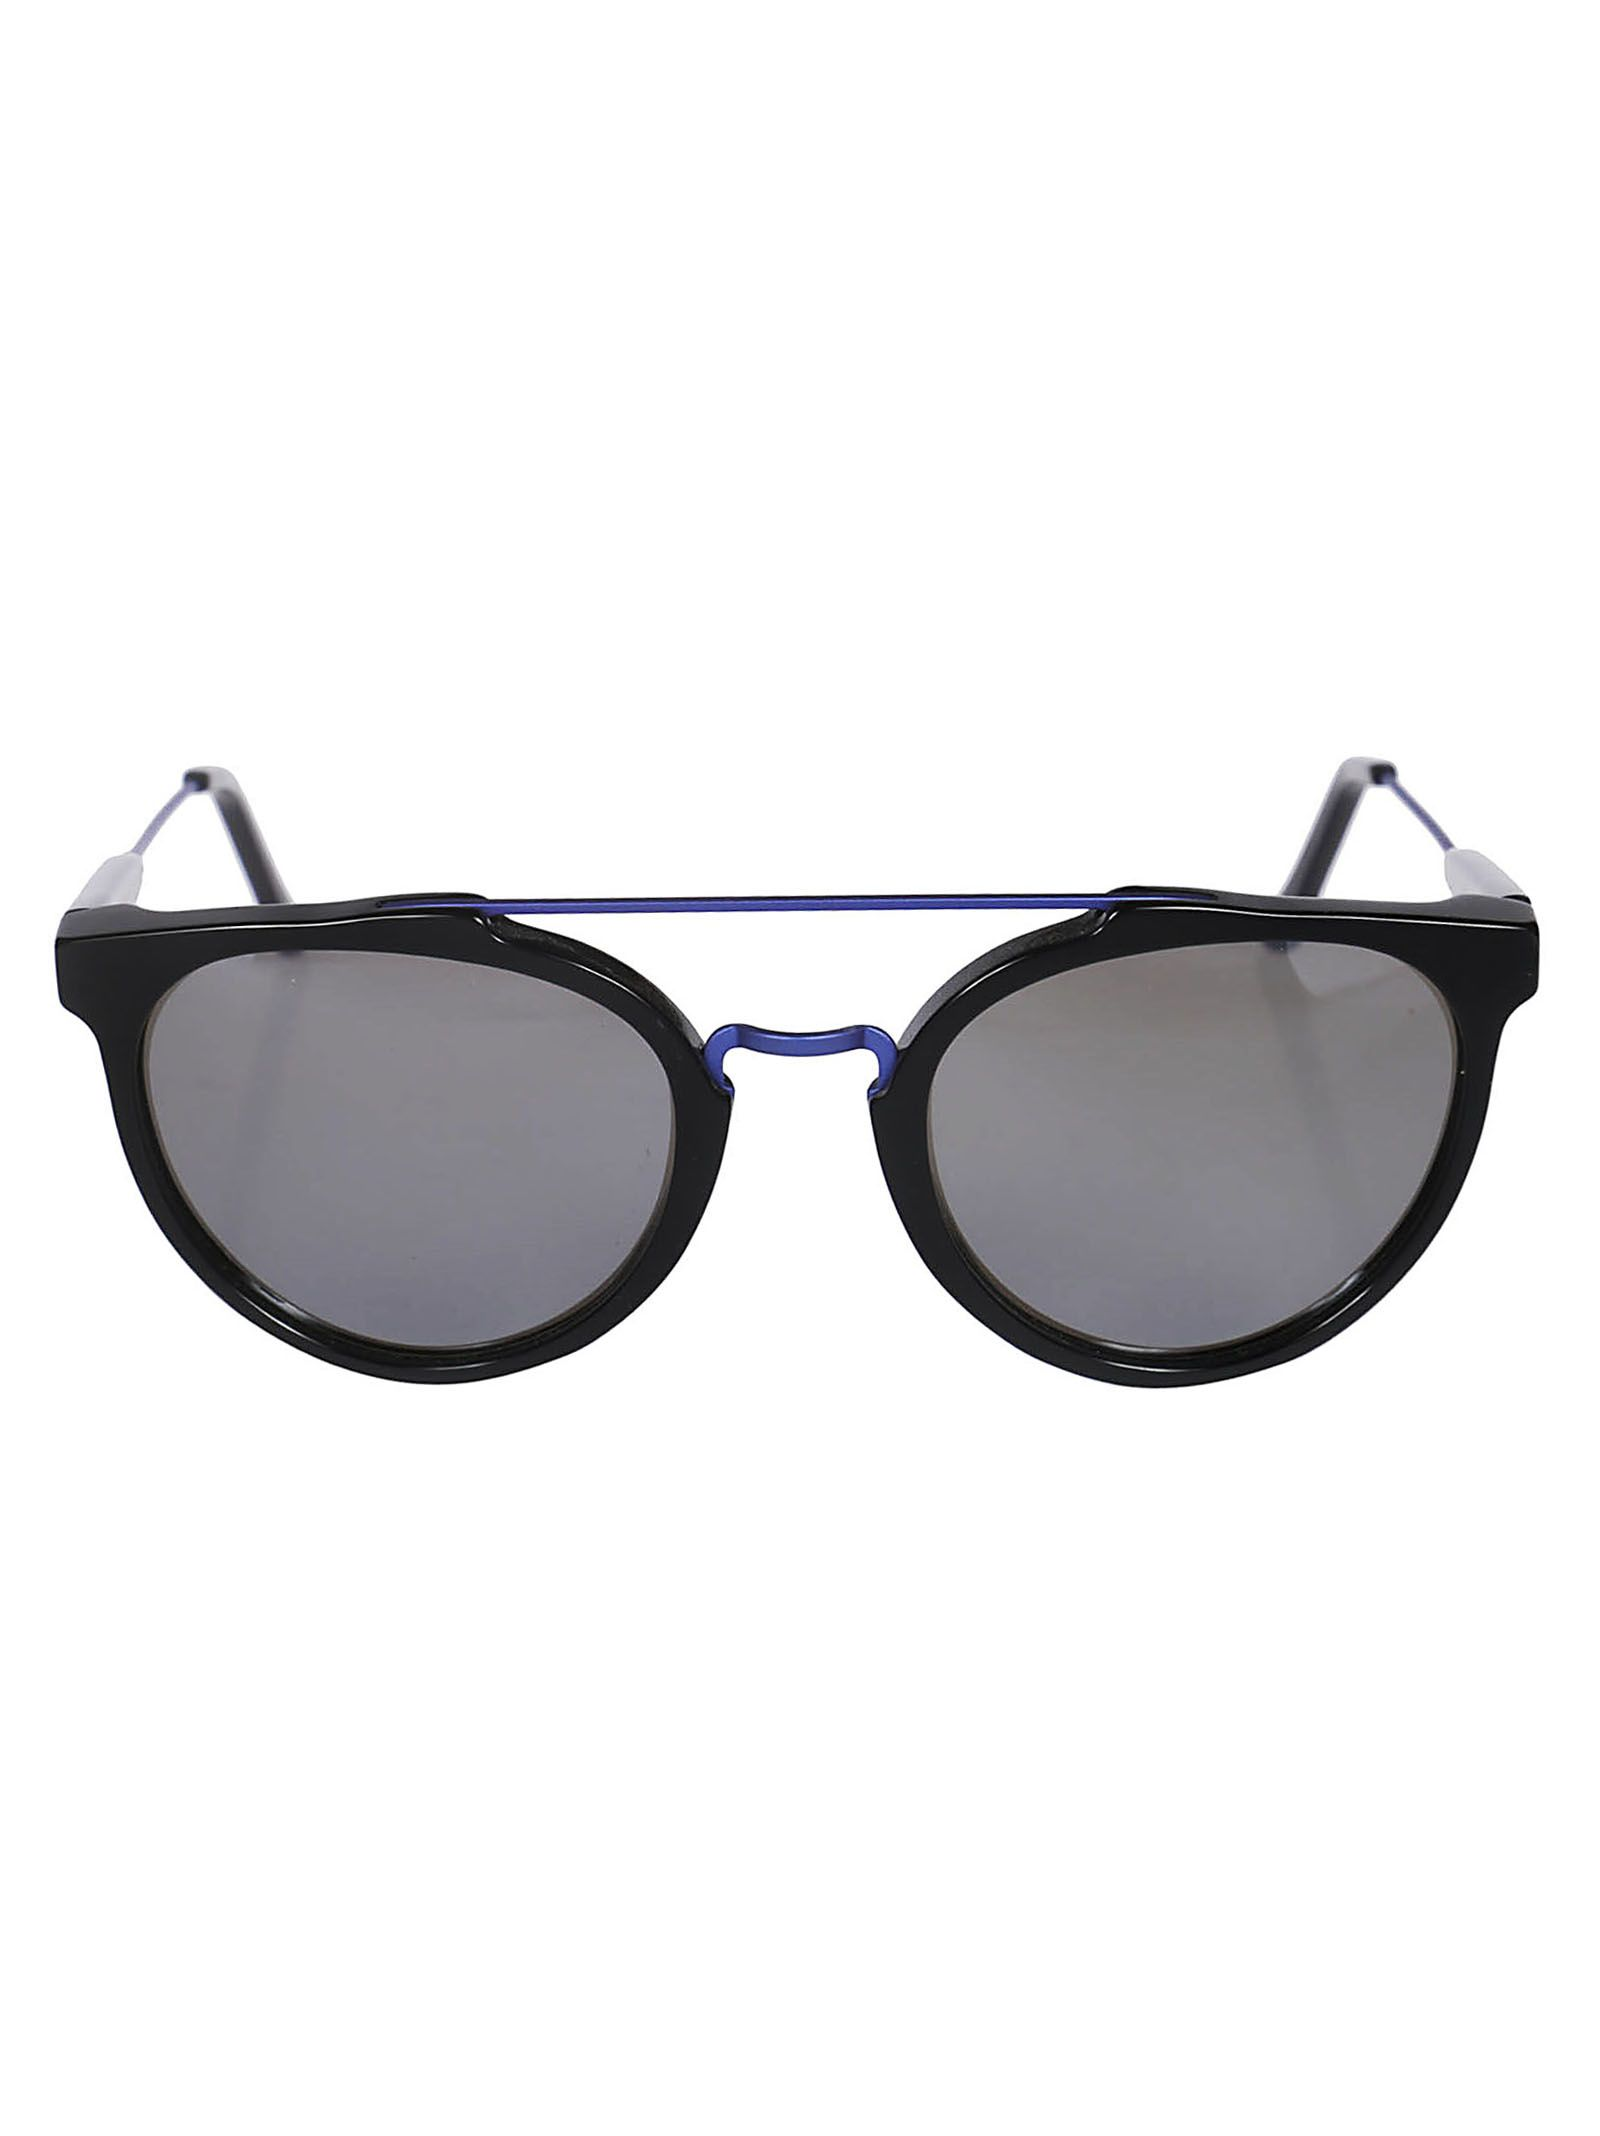 Retrosuperfuture Giaguaro Sunglasses